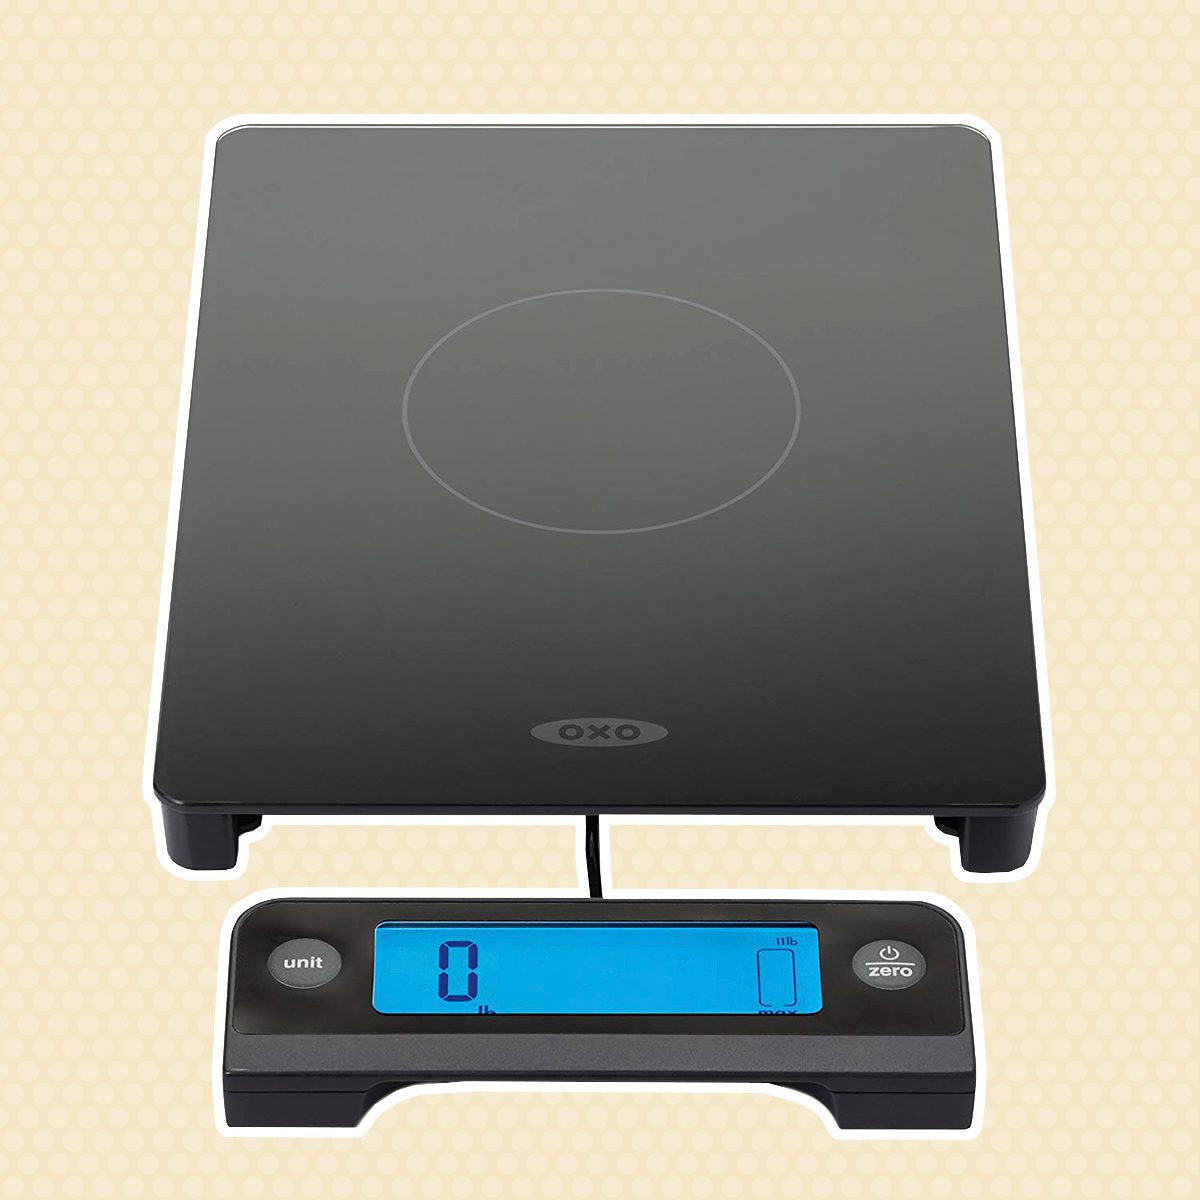 OXO 11176800 Good Grips Digital Glass Food Scale with Pull Out Display, 11 Pound, Black